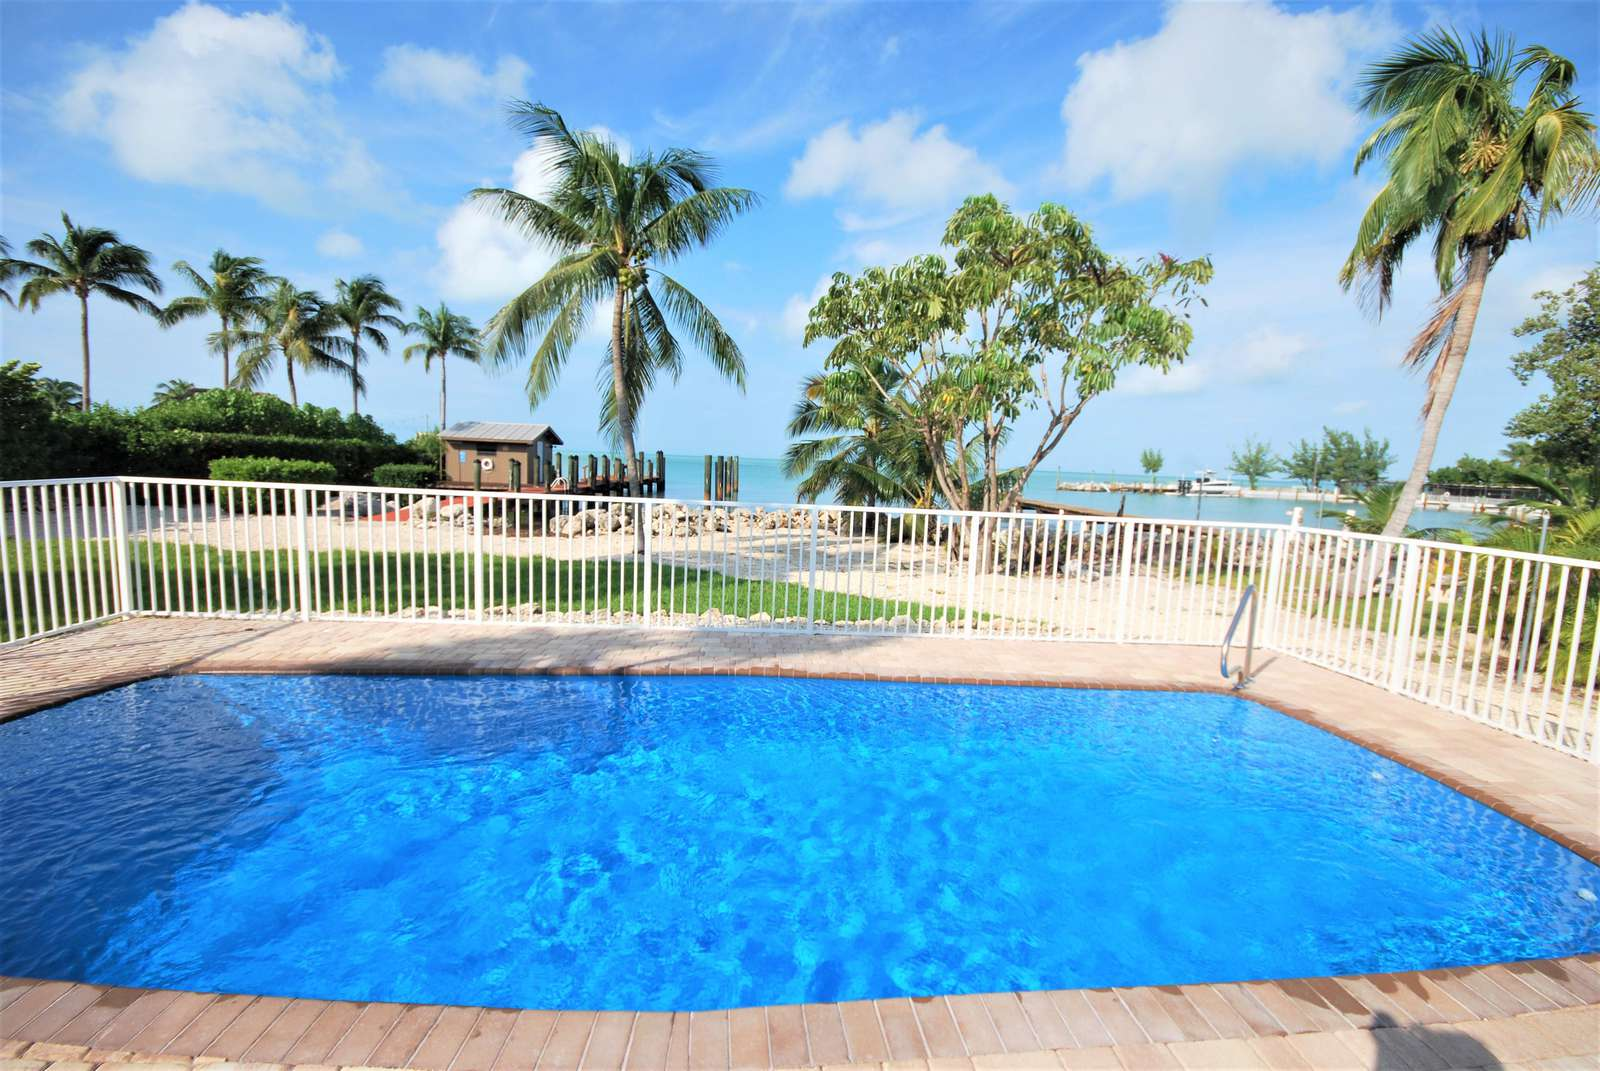 Our large 3'-6' gatted private pool Heated or Chilled with perfect open water views - property